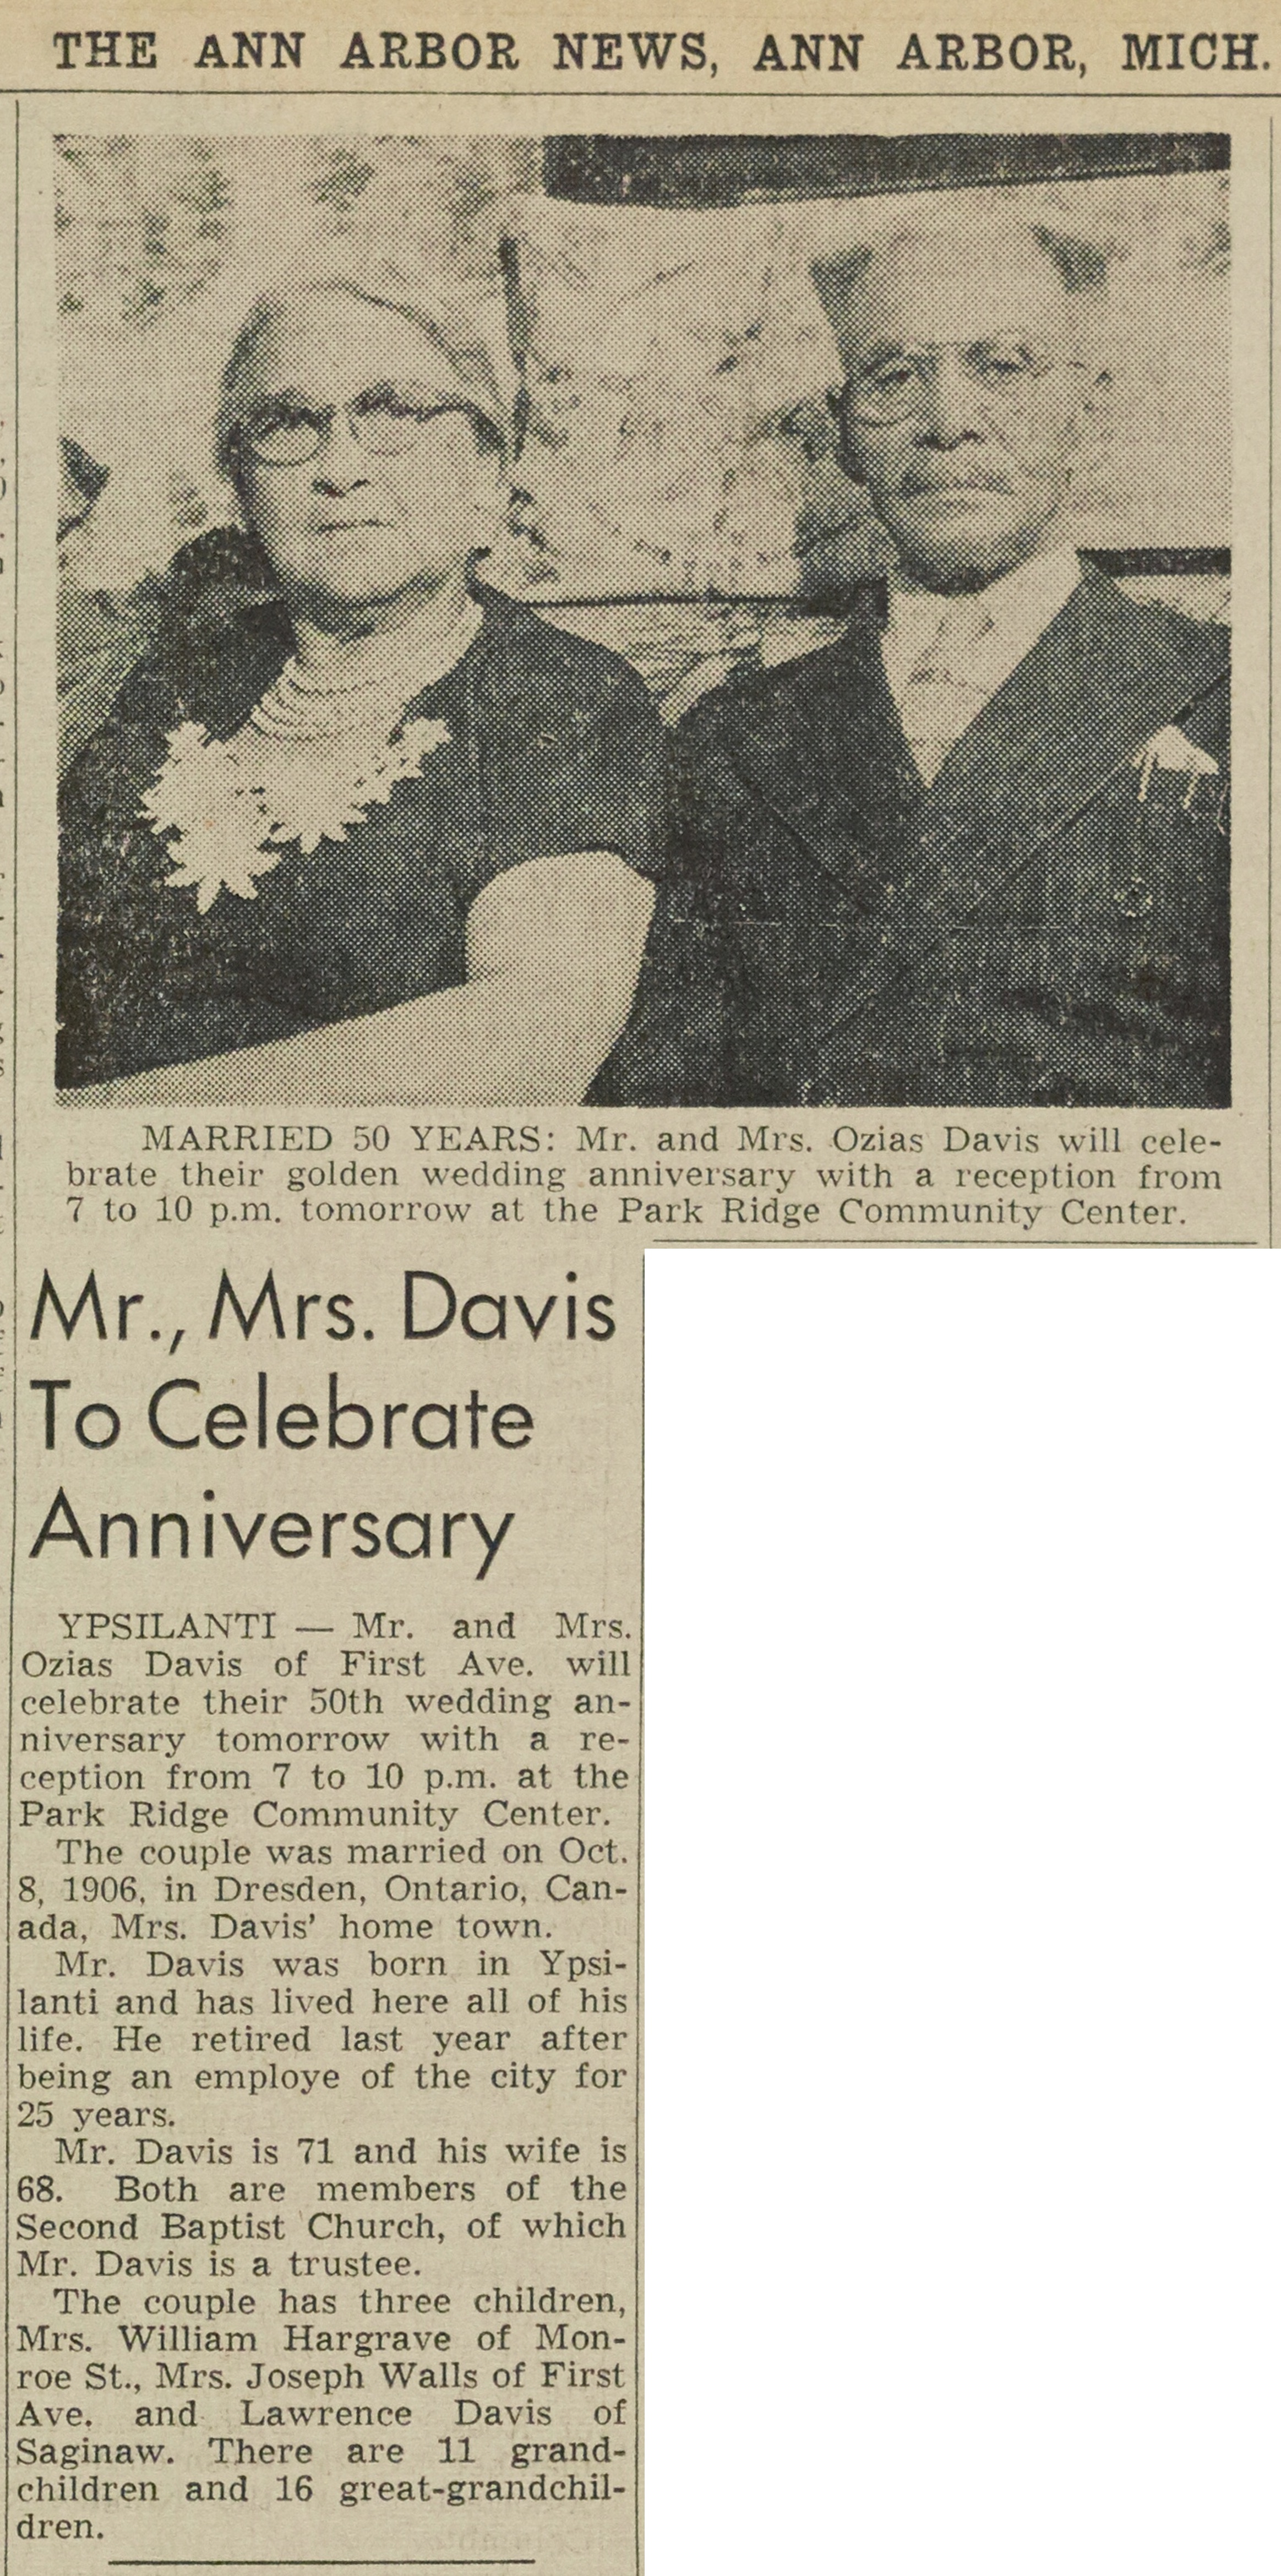 Mr., Mrs. Davis To Celebrate Anniversary image